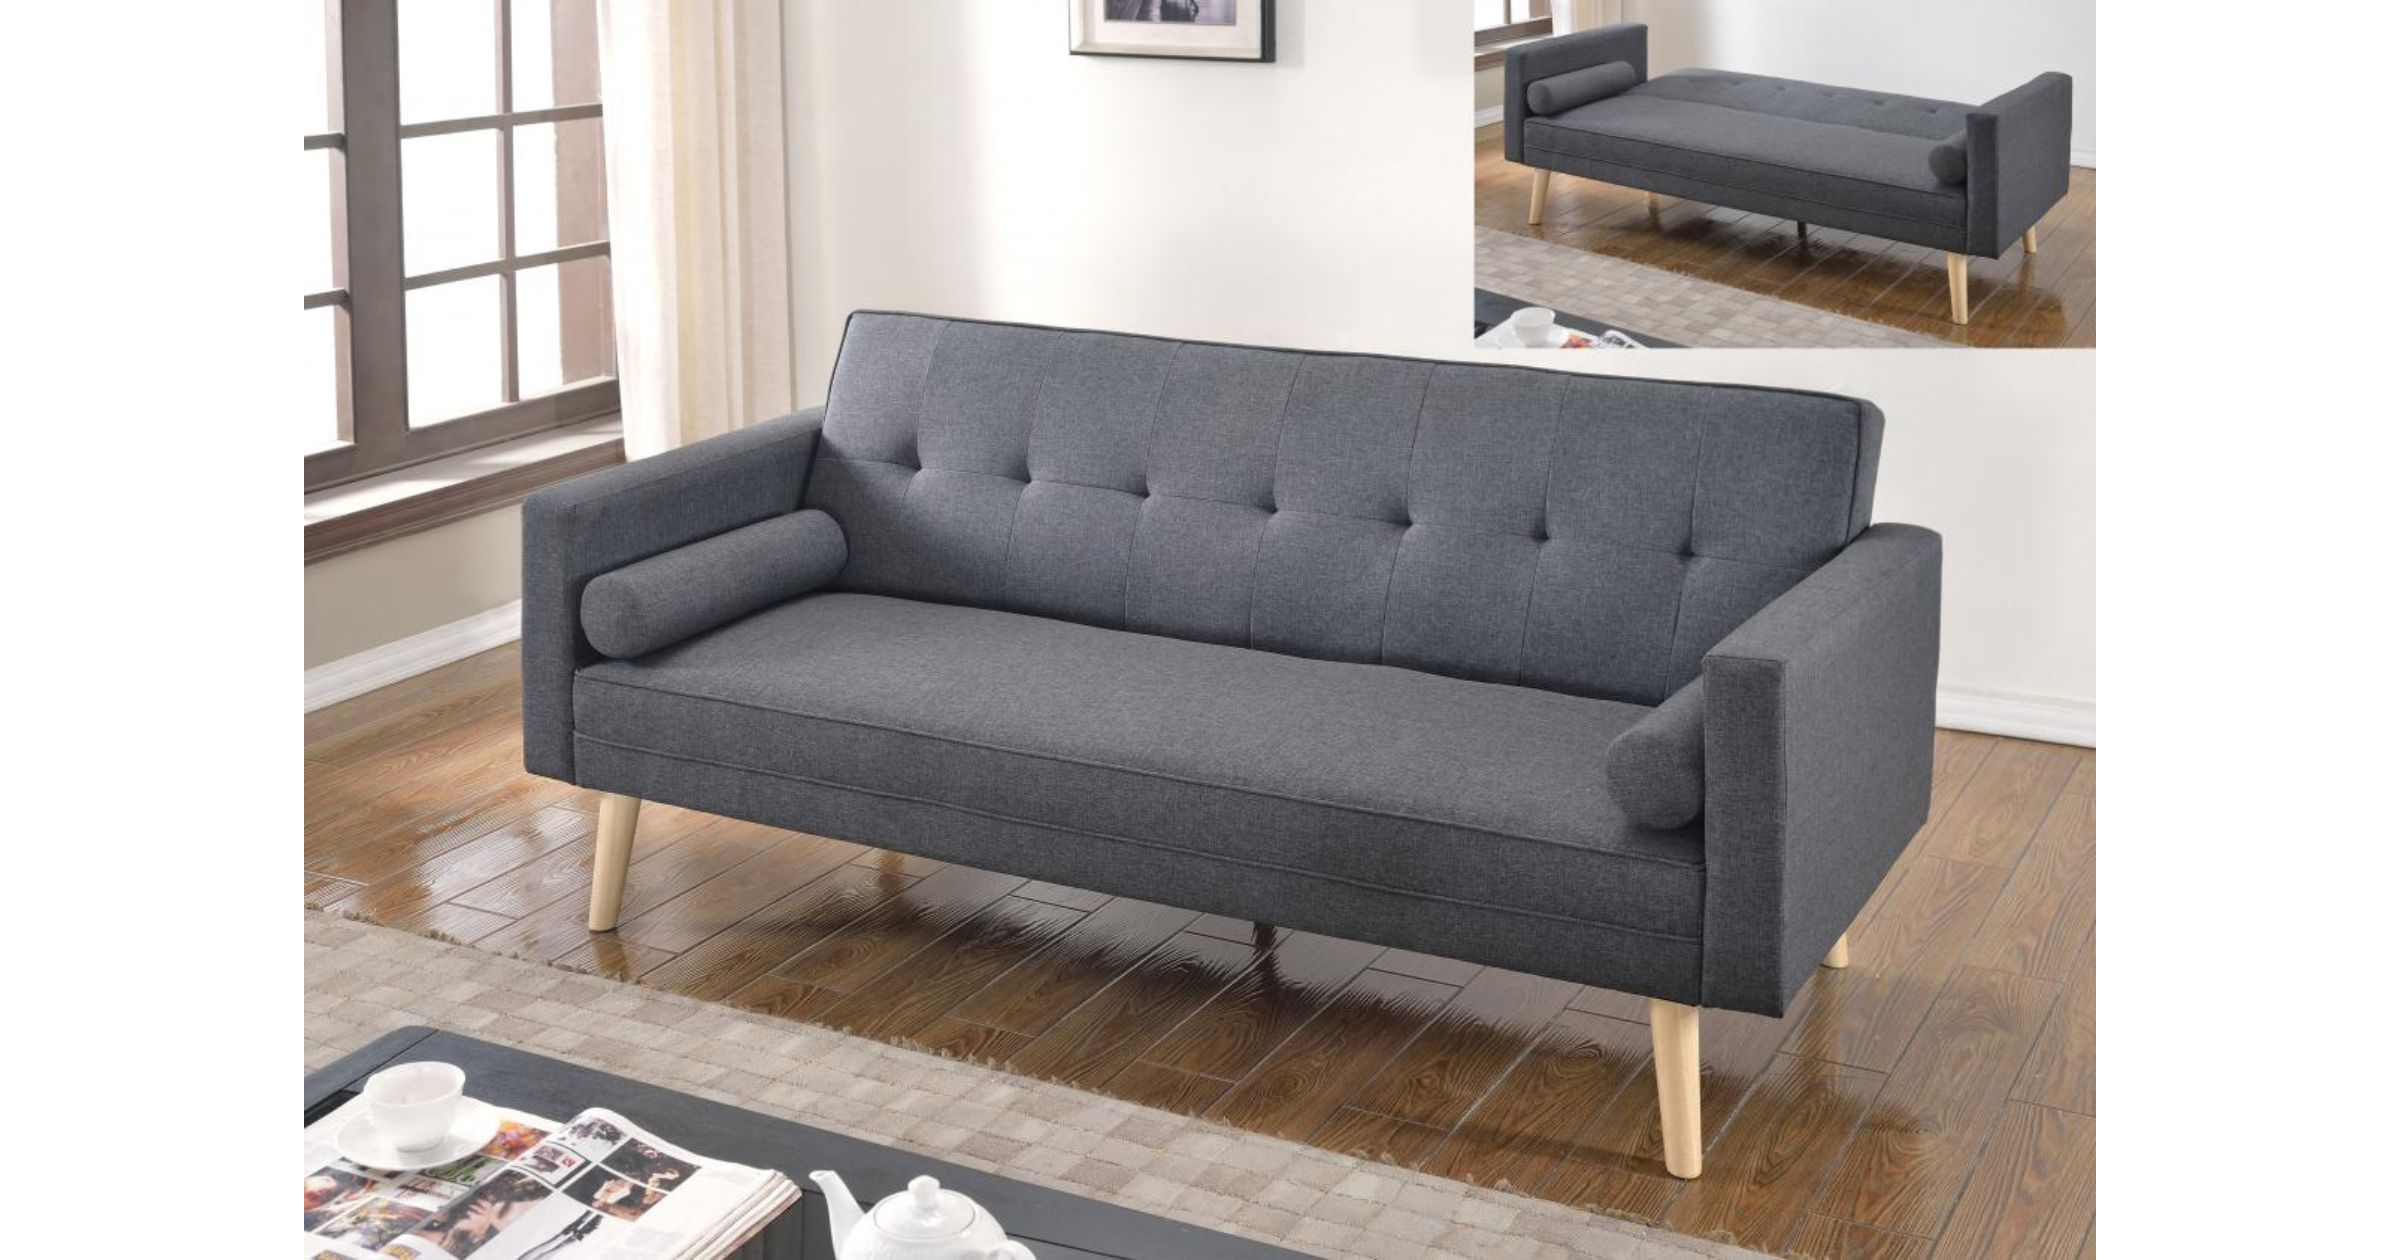 paris linen sofa bed dark grey rh designersofas4u co uk grey sofa beds for sale grey sofa beds ebay